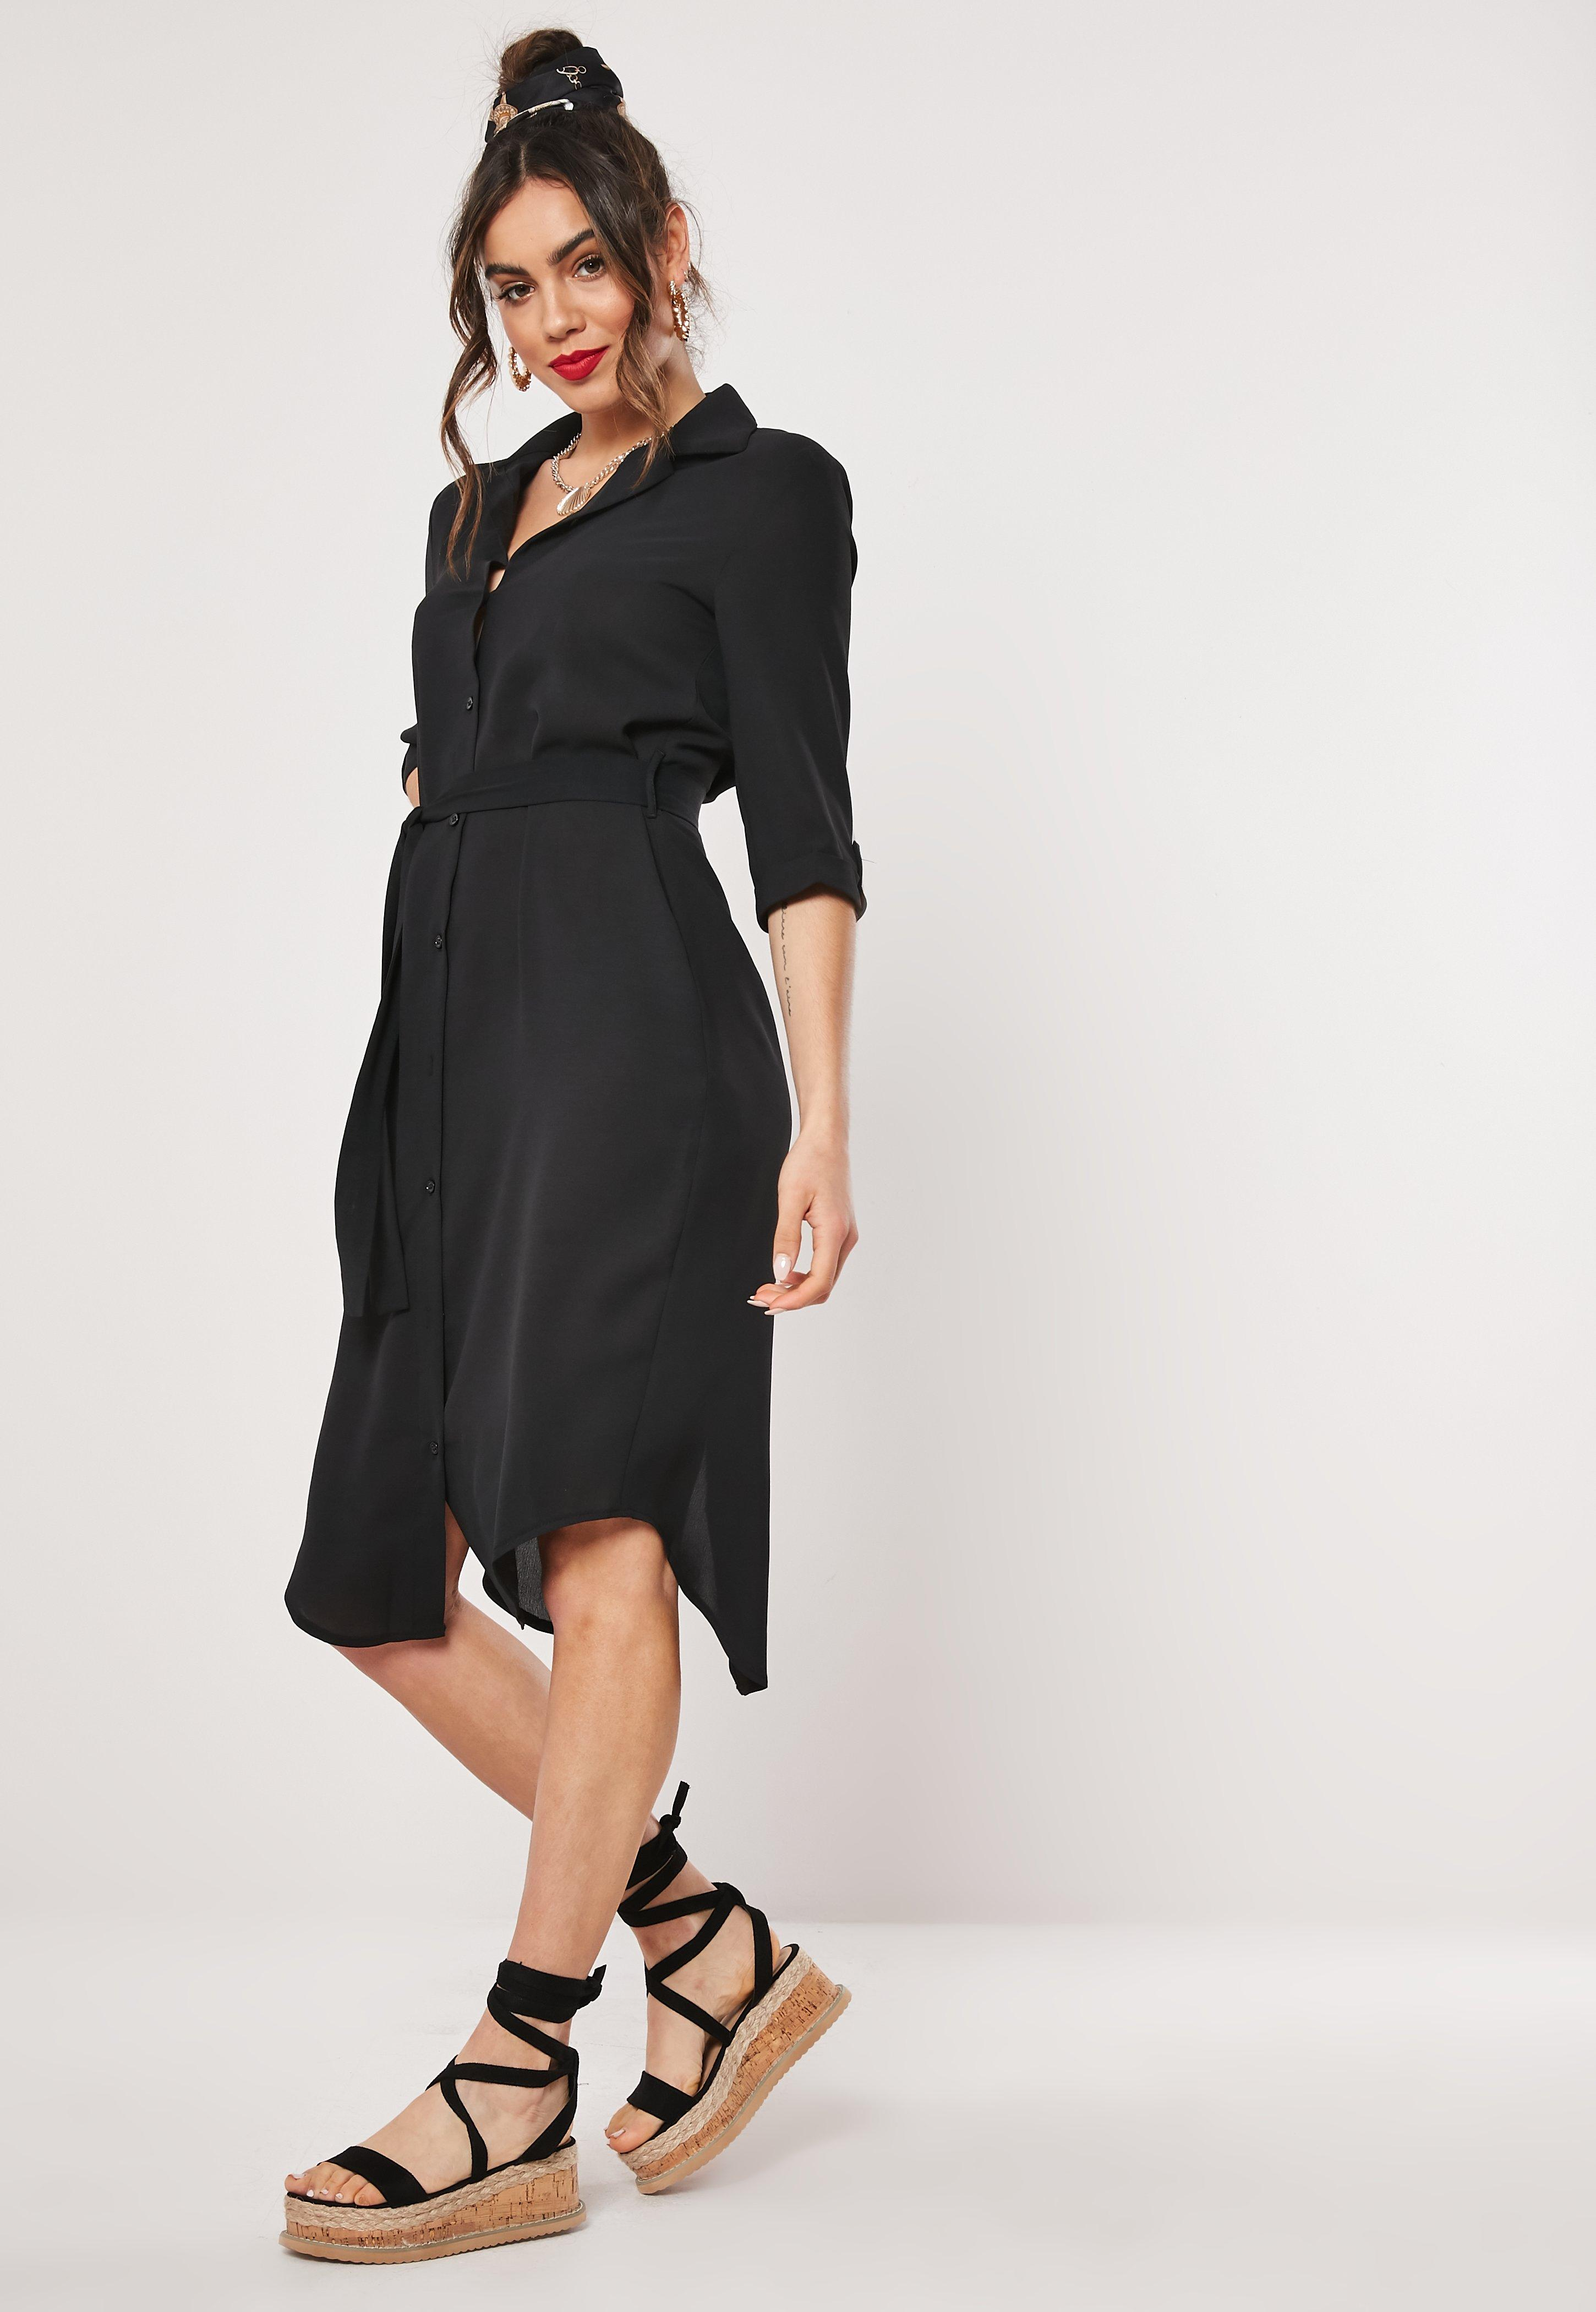 Missguided Tie Belt Midi Shirt Dress Free Shipping Official Wide Range Of Online L6x0sdVYyO